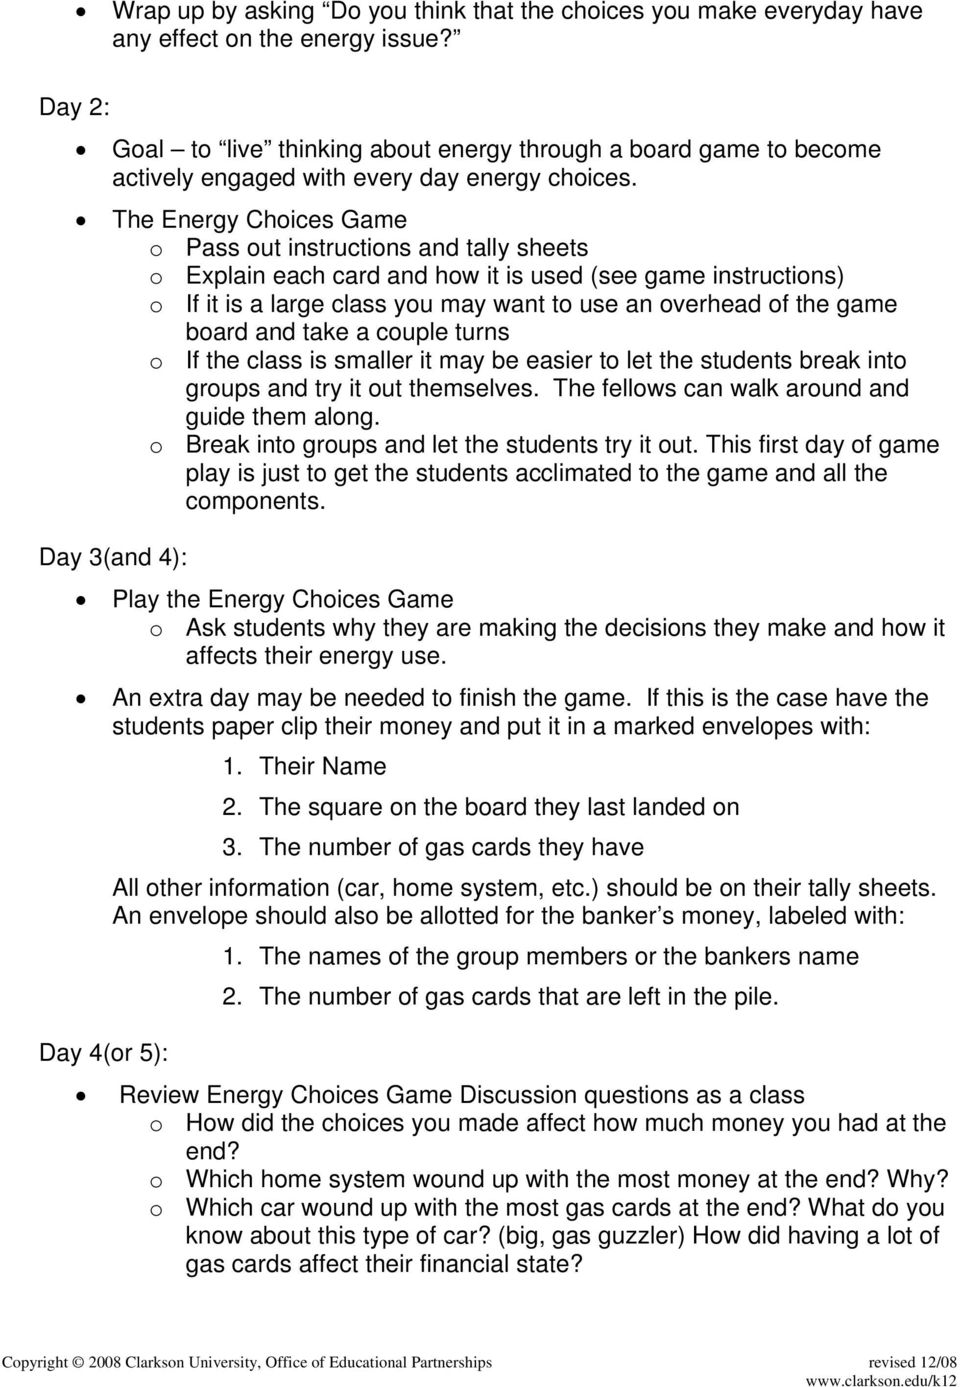 The Energy Choices Game o Pass out instructions and tally sheets o Explain each card and how it is used (see game instructions) o If it is a large class you may want to use an overhead of the game